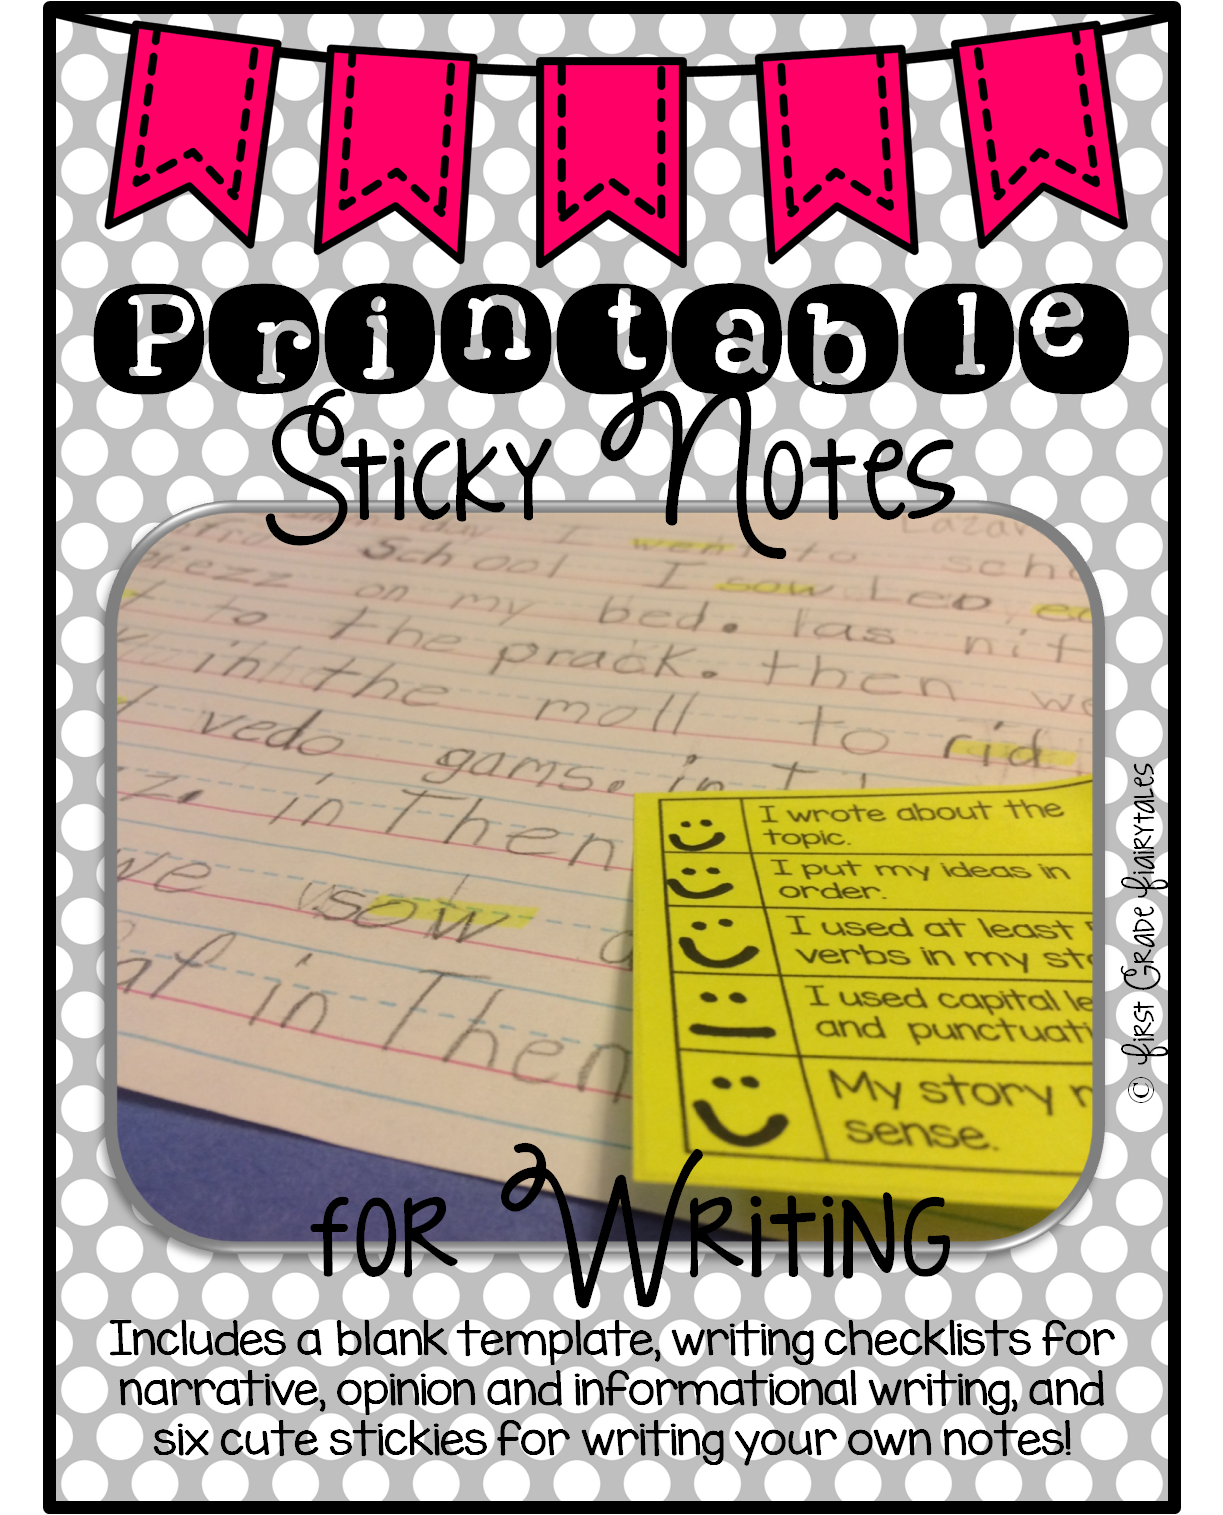 http://www.teacherspayteachers.com/Product/PRINTABLE-Sticky-Notes-for-Writing-1482685